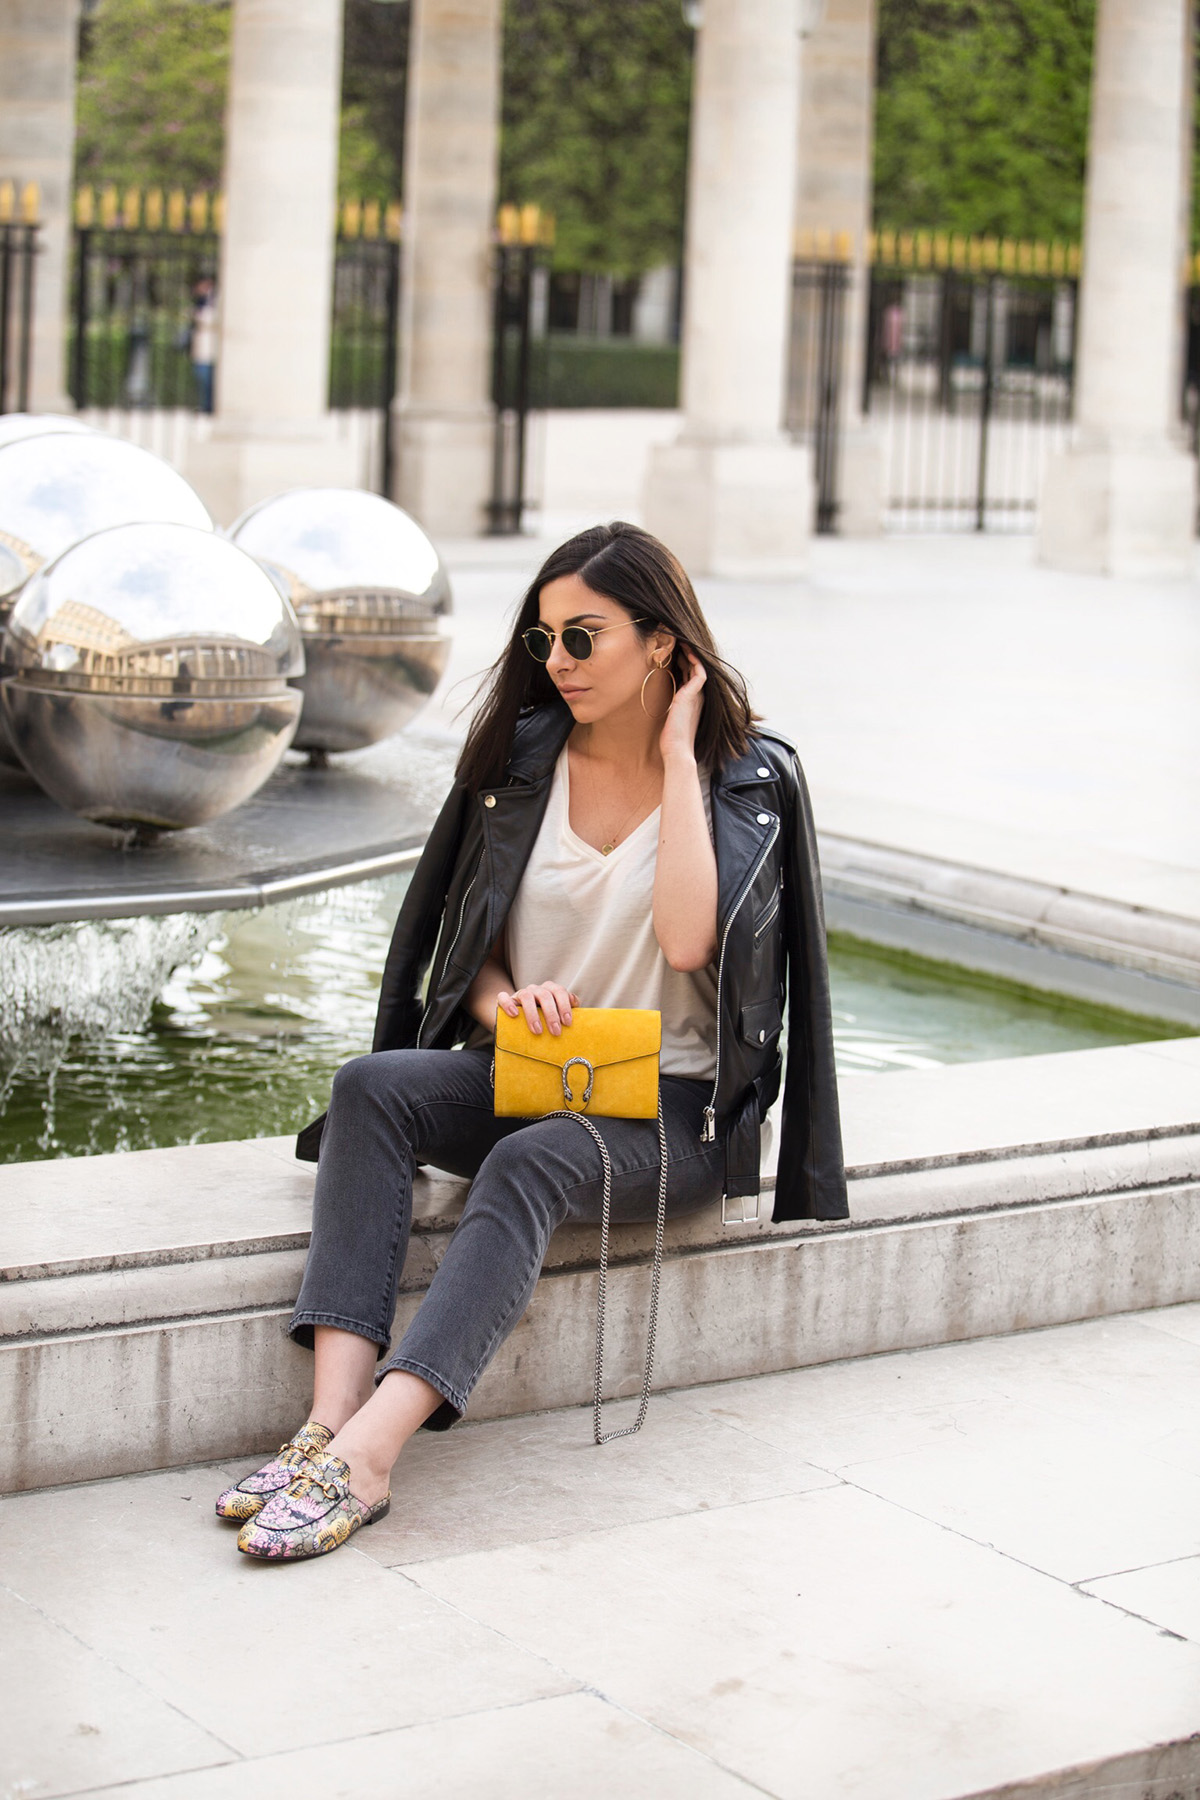 how to dress up a basic outfit - Stella Asteria Fashion & Lifestyle Blogger